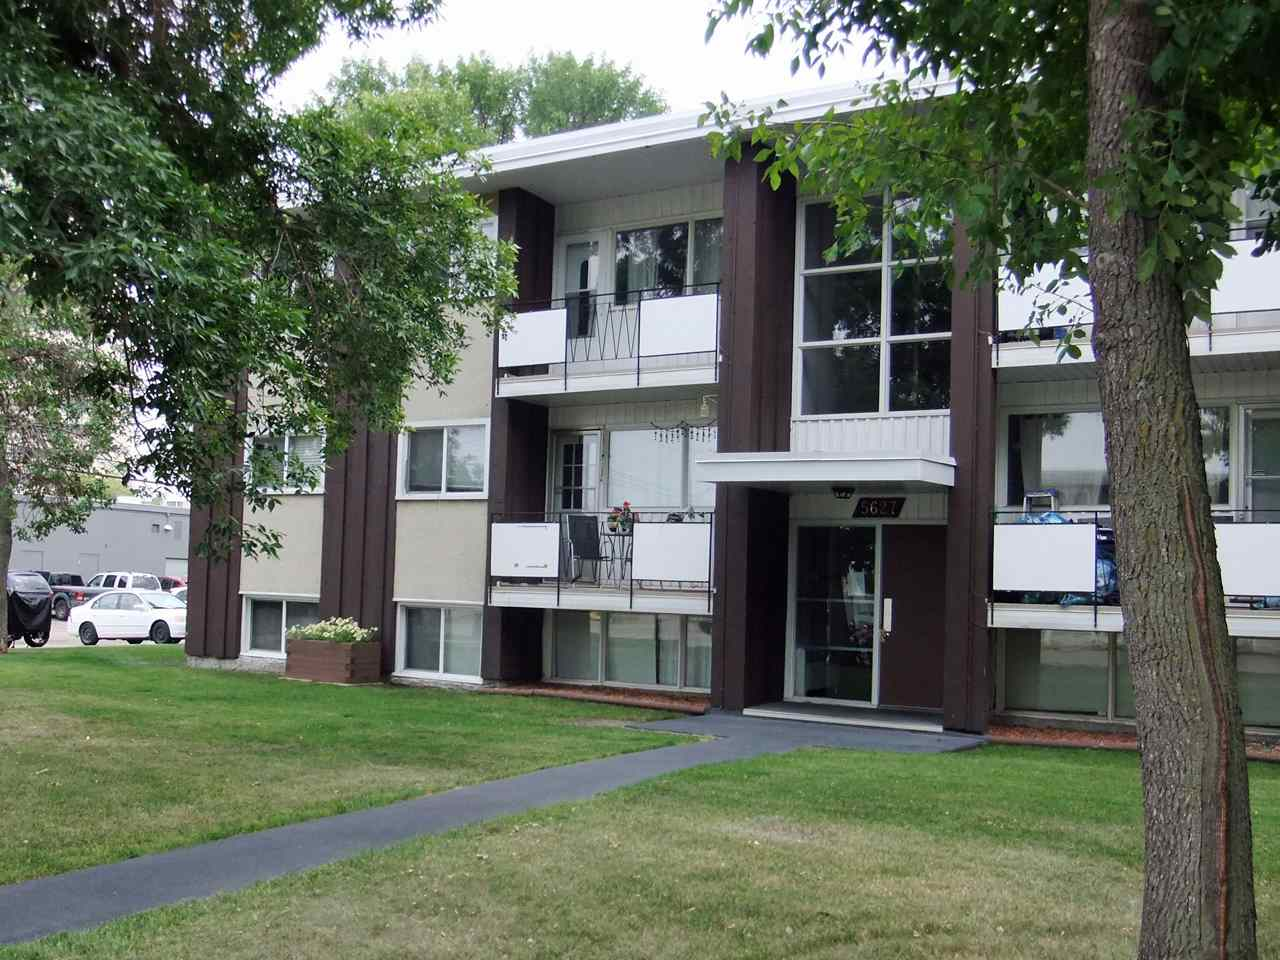 Investors, First Timers or Students (or parents!); This clean and comfy two bedroom condo is centrally located on the south side and is ready for you. The beautifully treed Charleswood complex is in the heart of Pleasantview, close to restaurants, shopping and transportation, and a short walk to Southgate and the LRT. This home features a large living room, efficient galley kitchen with dining area, two bedrooms, a full bath, and handy in-suite storage room. There is one assigned, energized parking stall close by and plenty of bicycle parking. The low condo fees (under $200 per month) include heat and water. A great condo at a great price; all that?s missing is you; so let?s get moving! Seller is offering a $1,000 rebate to the buyer for 2017 possession.